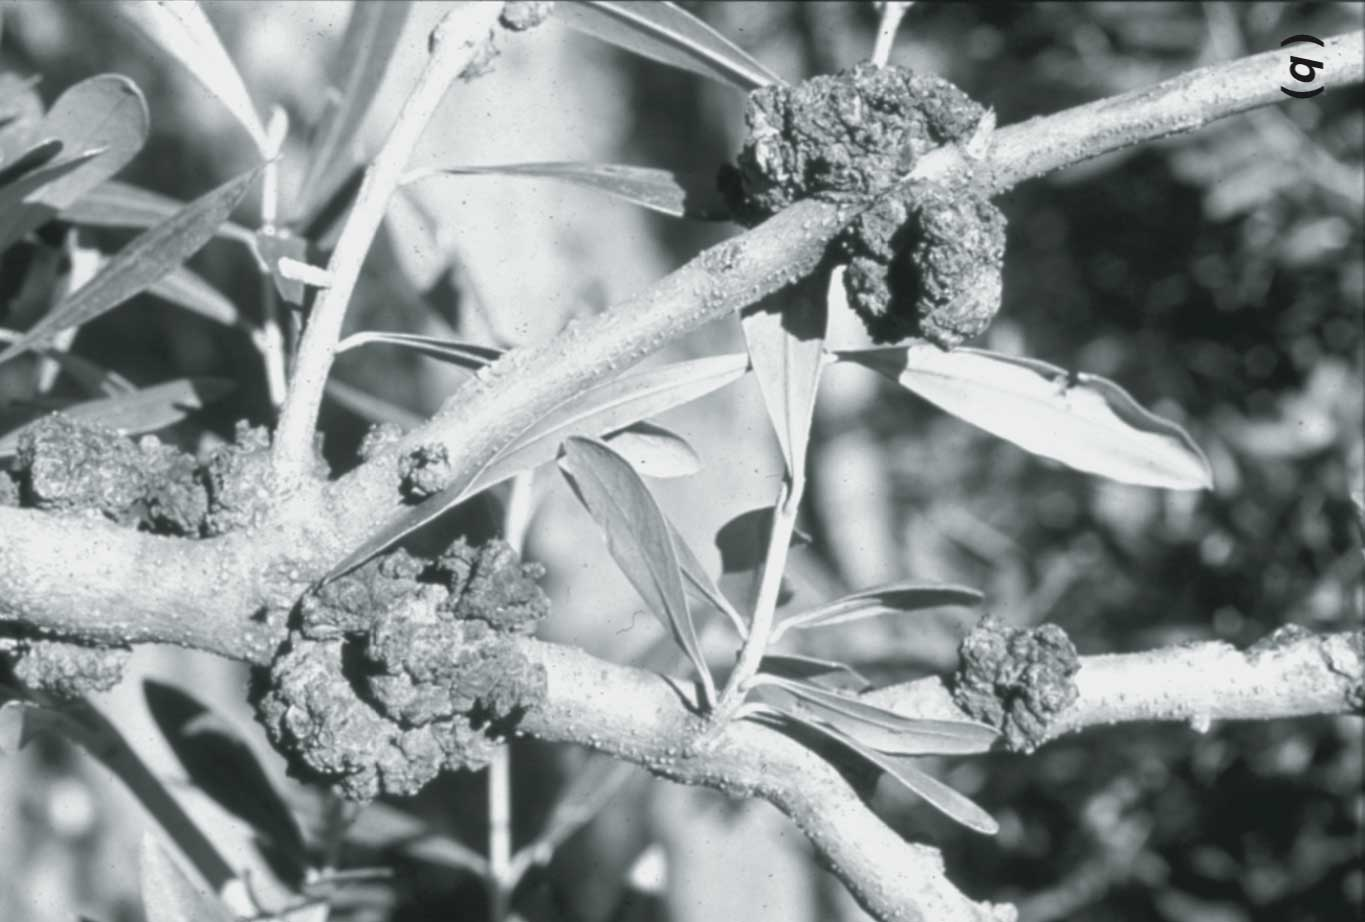 Olive Knot and its Pathogens